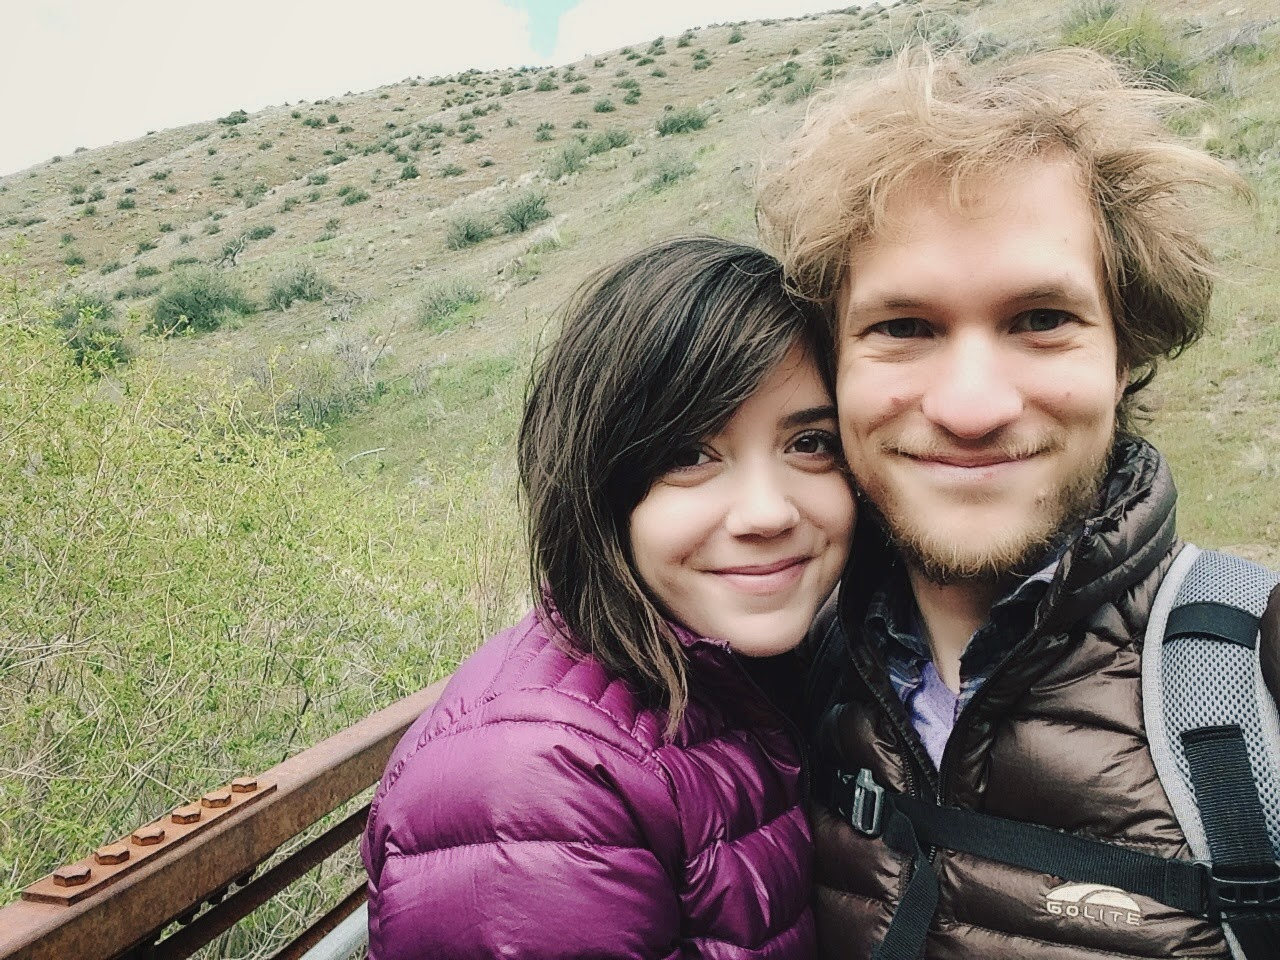 emorie+and+will+hiking.jpeg